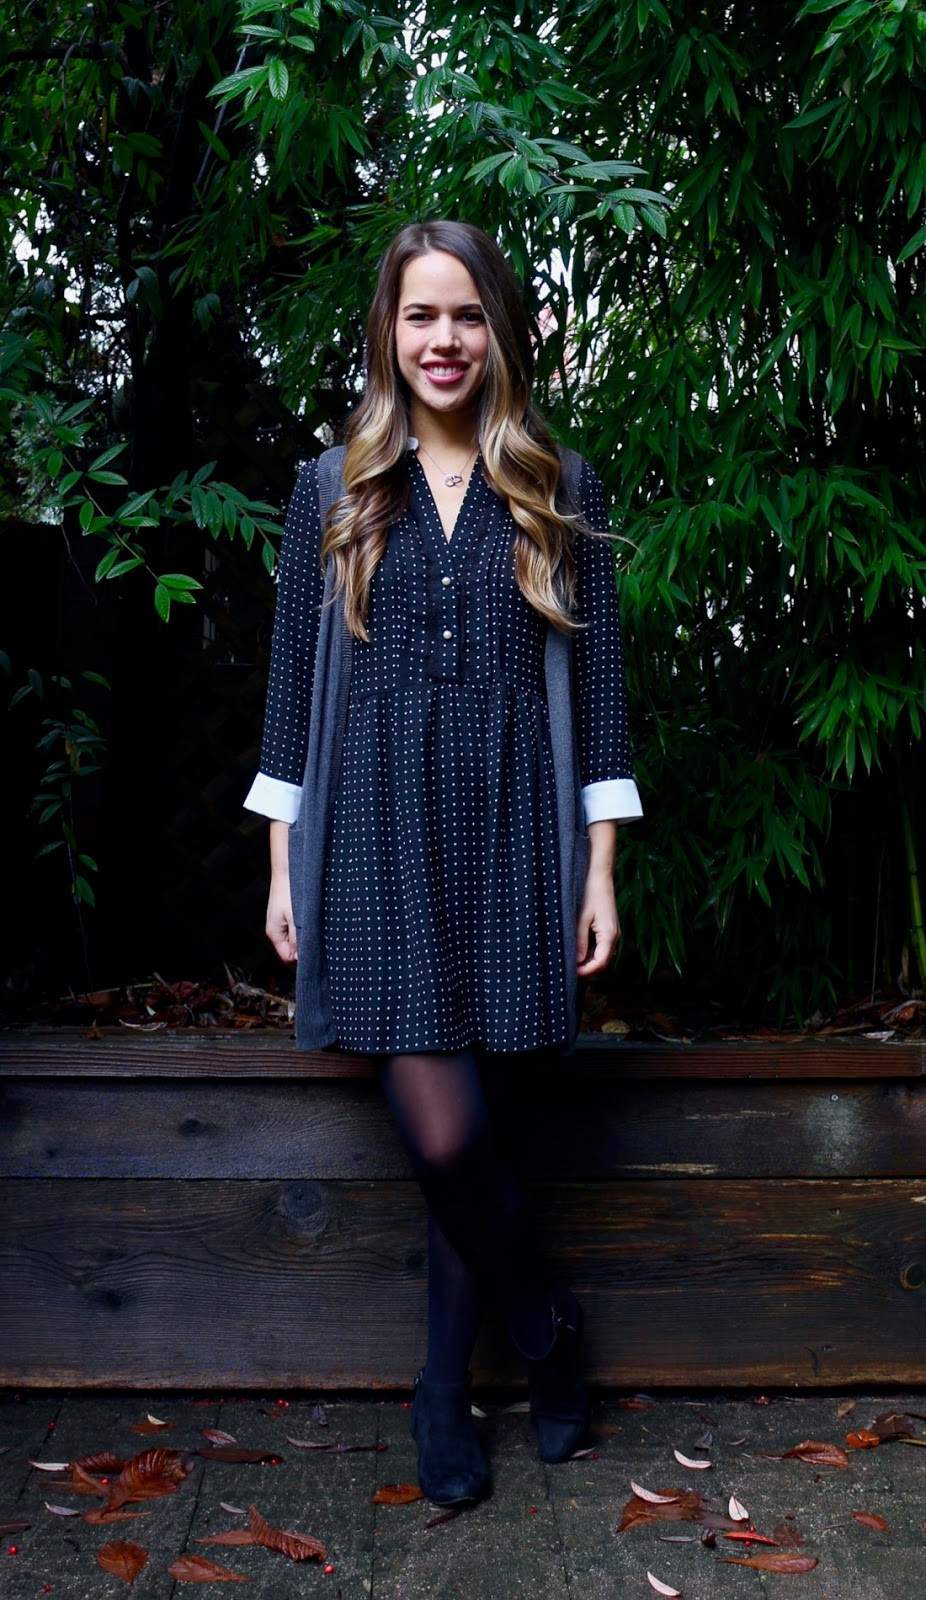 Jules in Flats - Zara Polka Dot Dress + Sweater Vest (Business Casual Fall Workwear on a Budget)